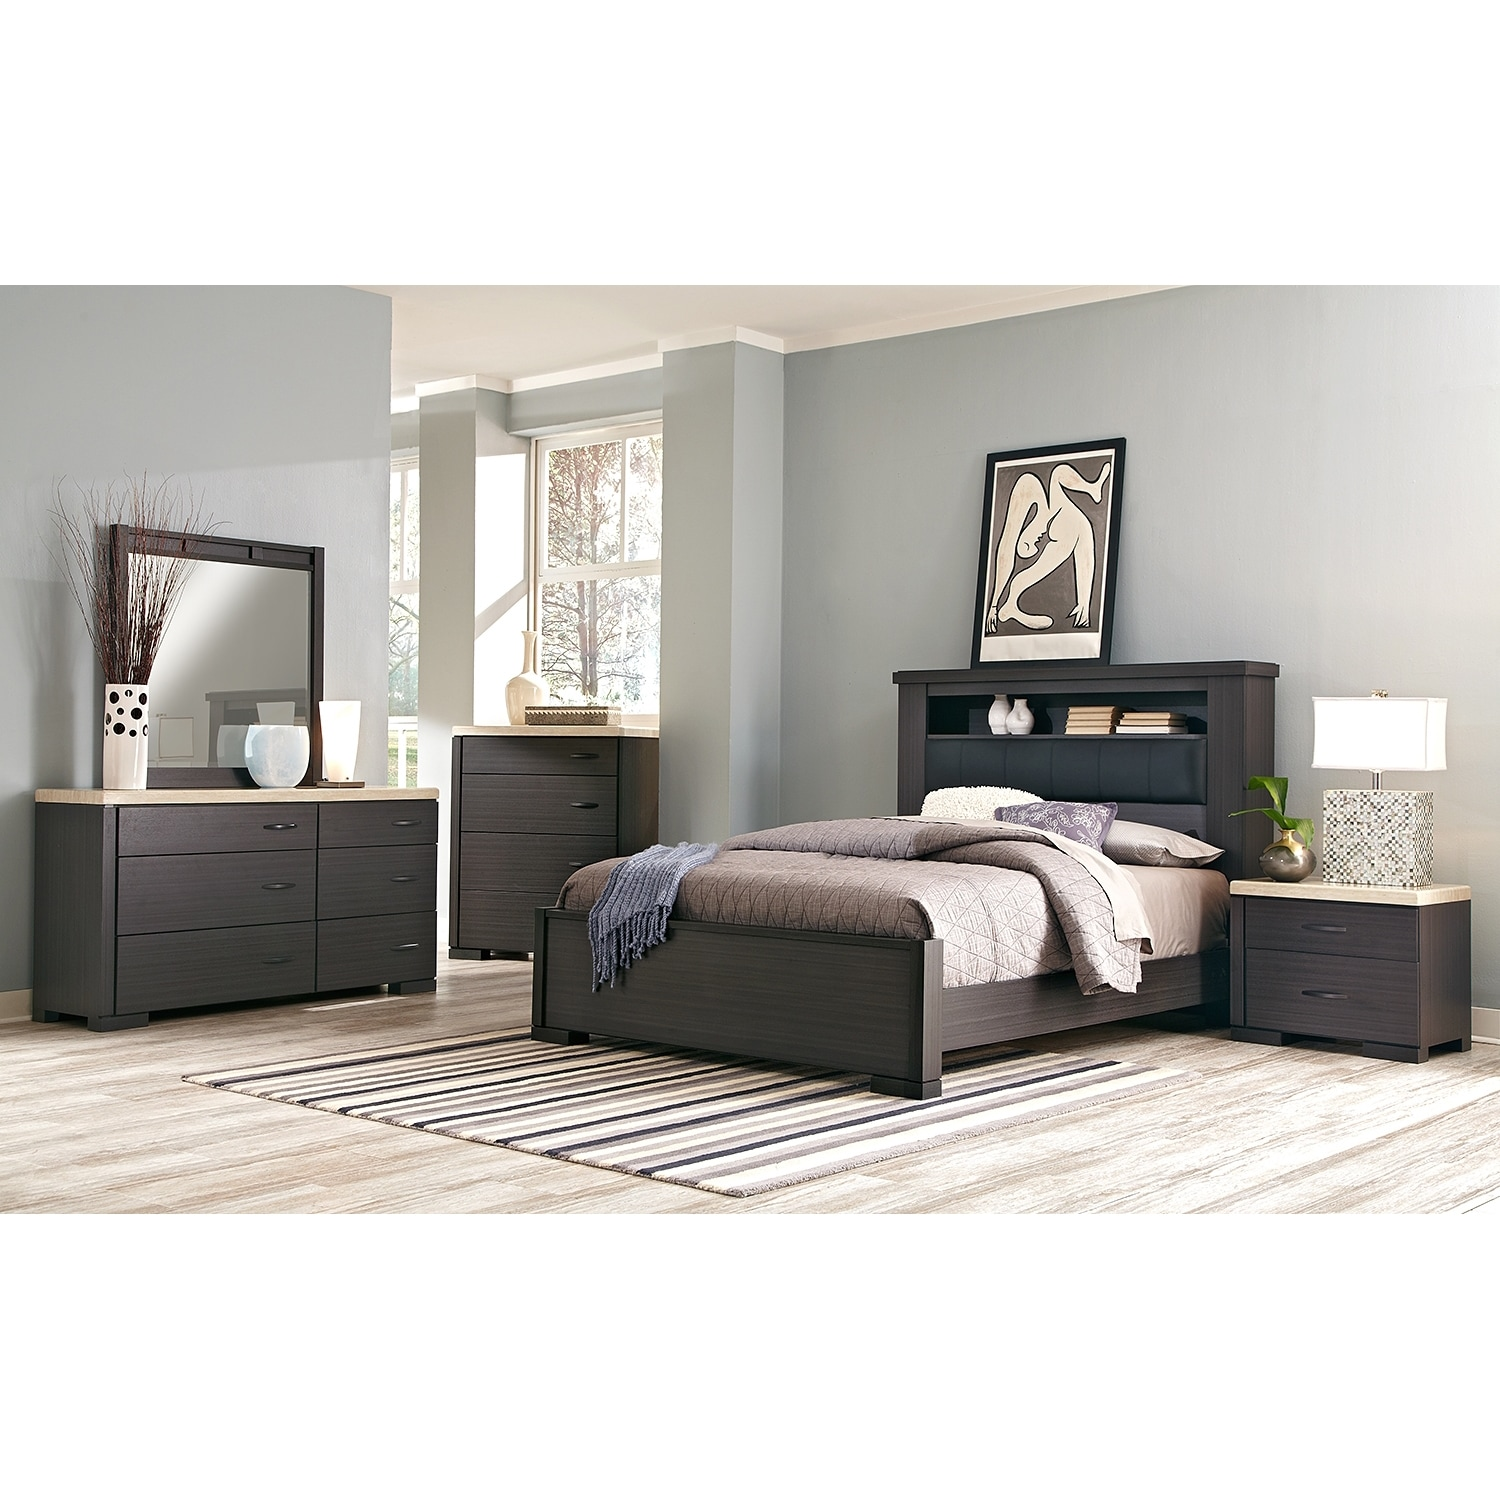 Furniture Store Outlet: Camino 7-Piece Queen Bedroom Set